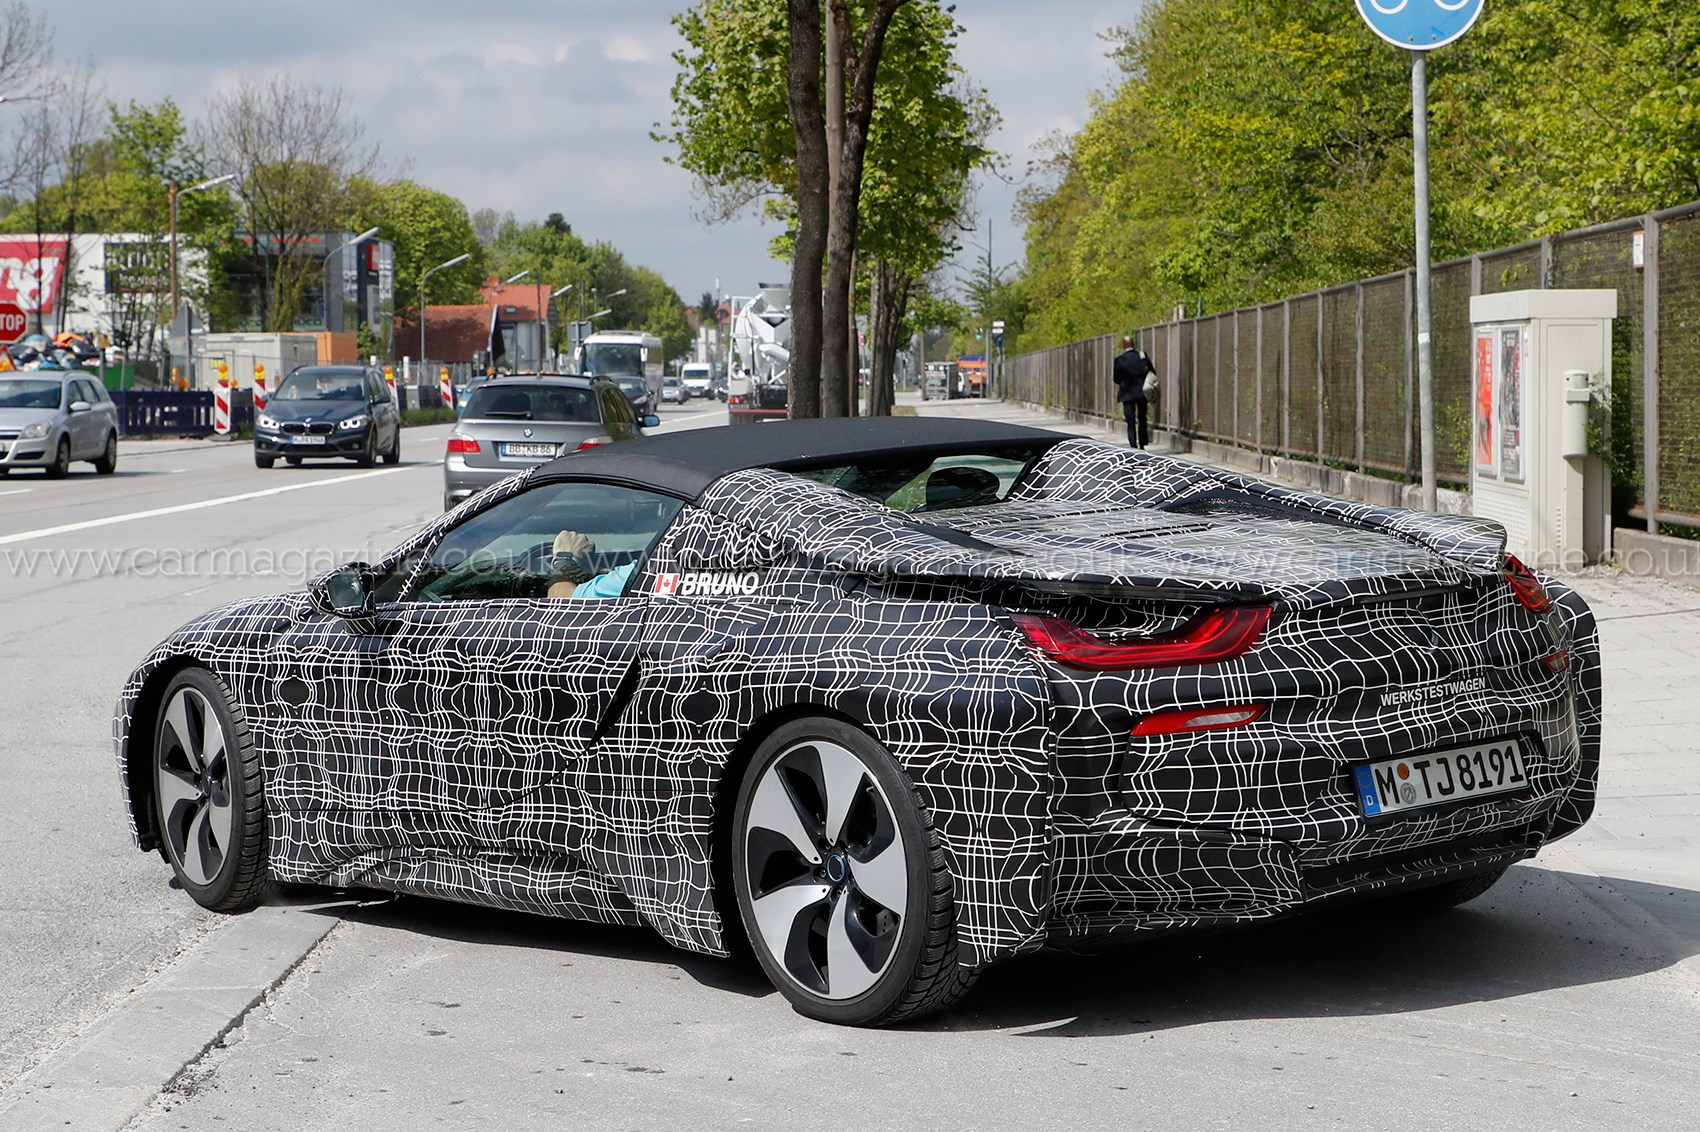 Bmw I8 Roadster Caught Testing At Last further Review furthermore 2010 Seat Leon Cupra 1 as well 89 Saab 900 Convertible as well 1106384 bmw X2 Concept Debuts At 2016 Paris Auto Show. on alfa romeo convertible